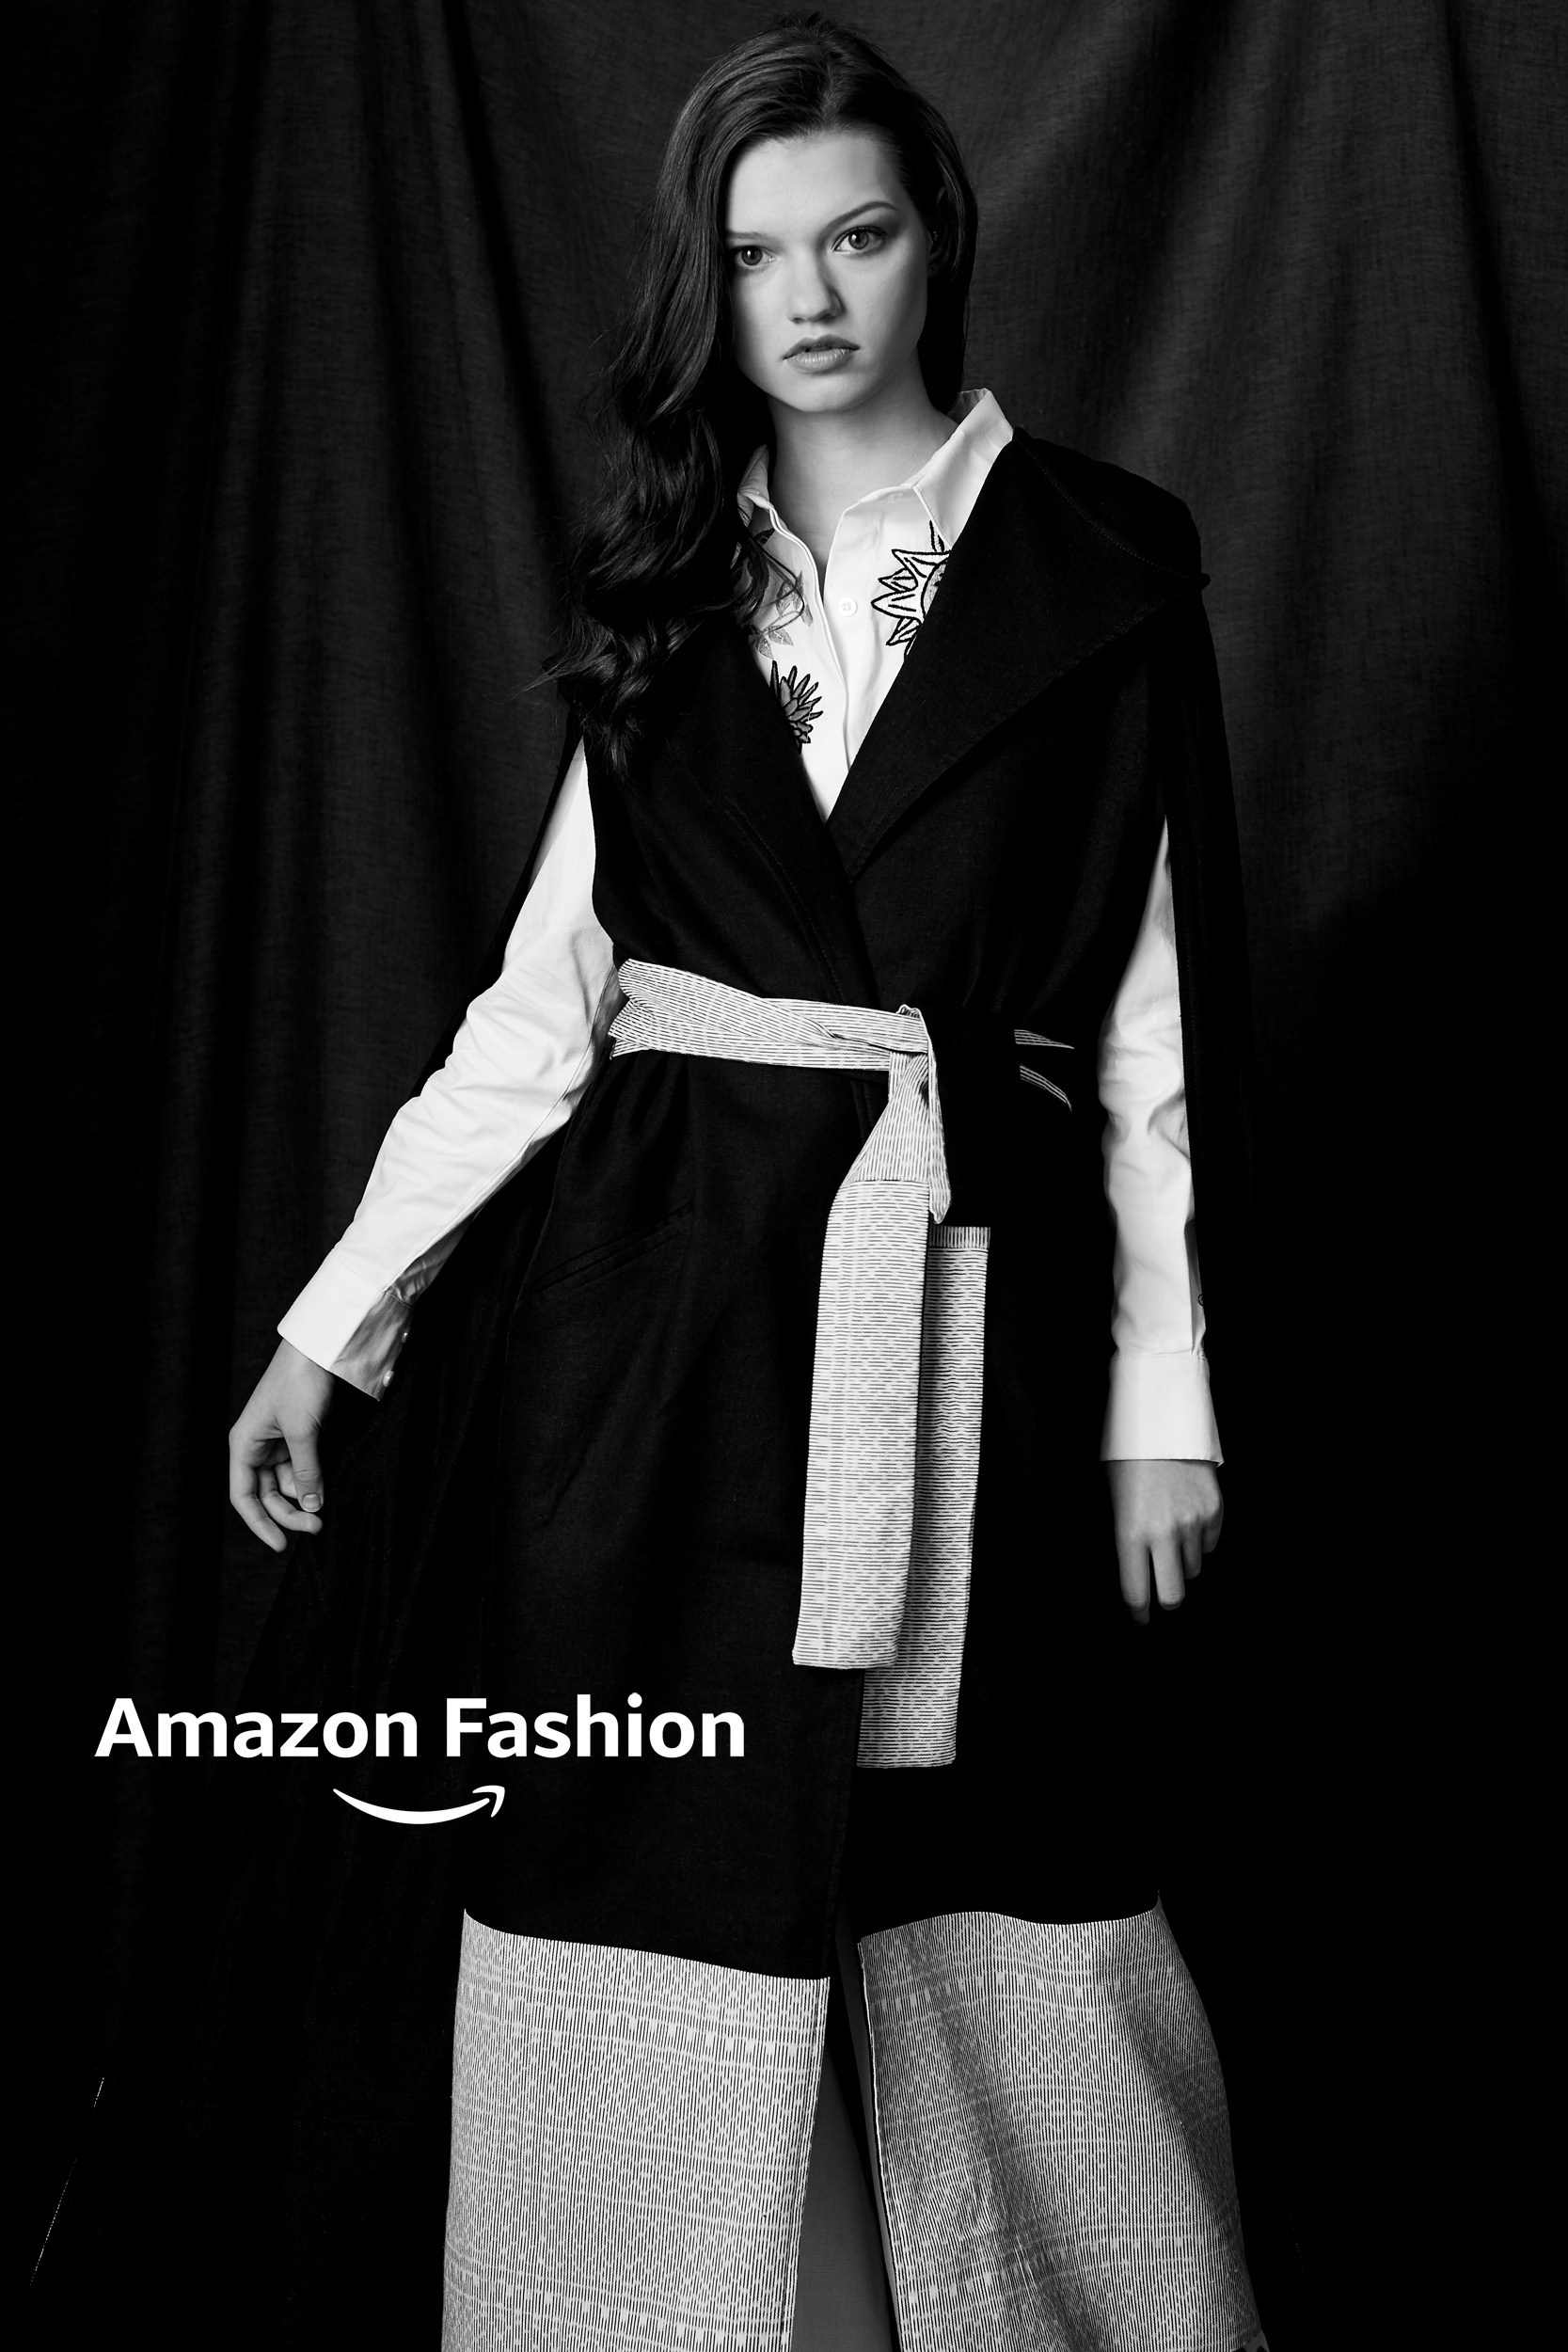 AmazonFashion20192605.AmorYRosas